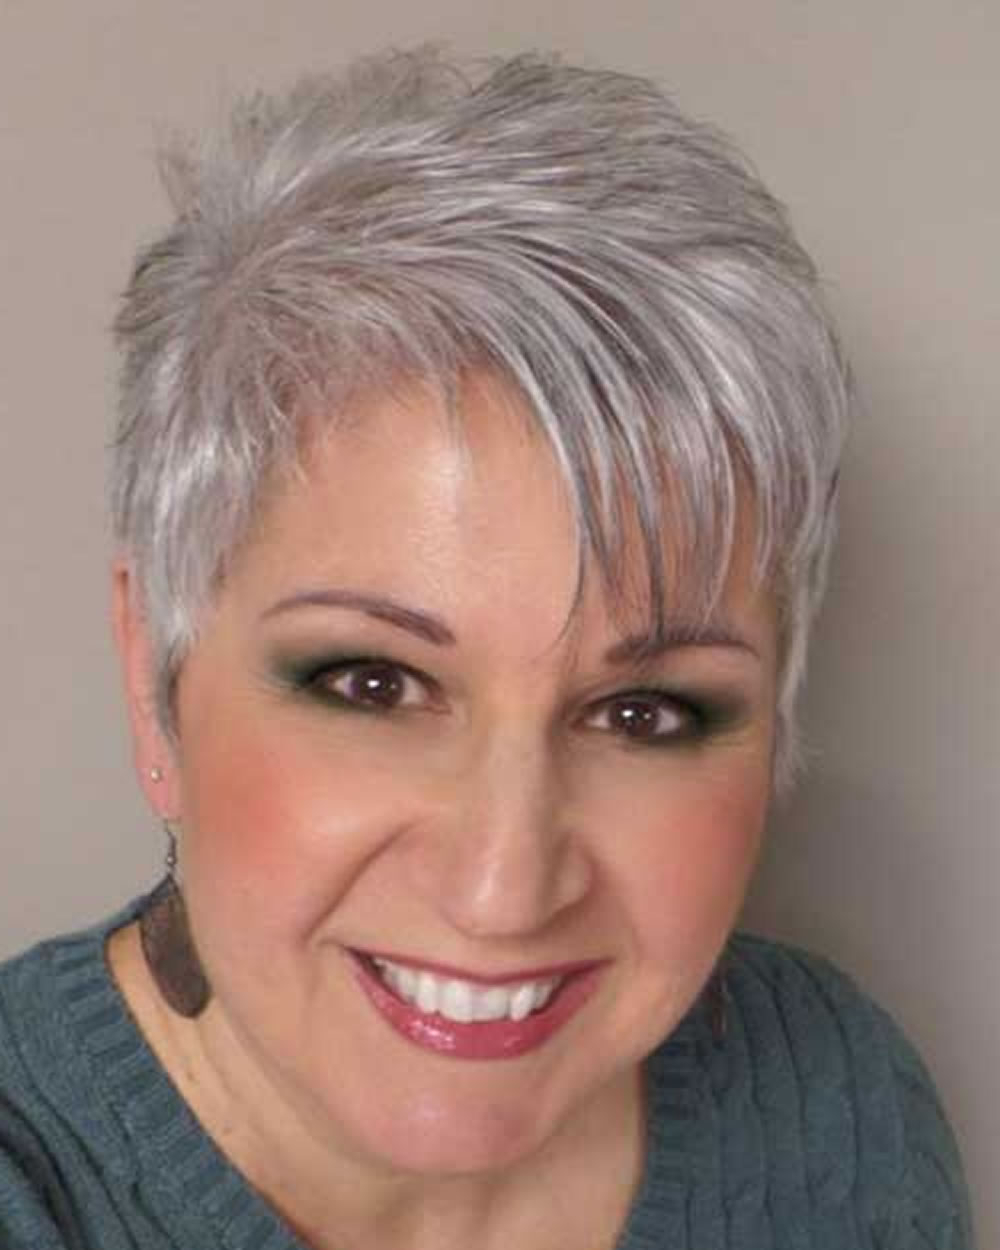 Pixie Short Haircuts For Older Women Over 50 & 2018 2019 Short Within Pixie Undercut Hairstyles For Women Over (View 17 of 20)